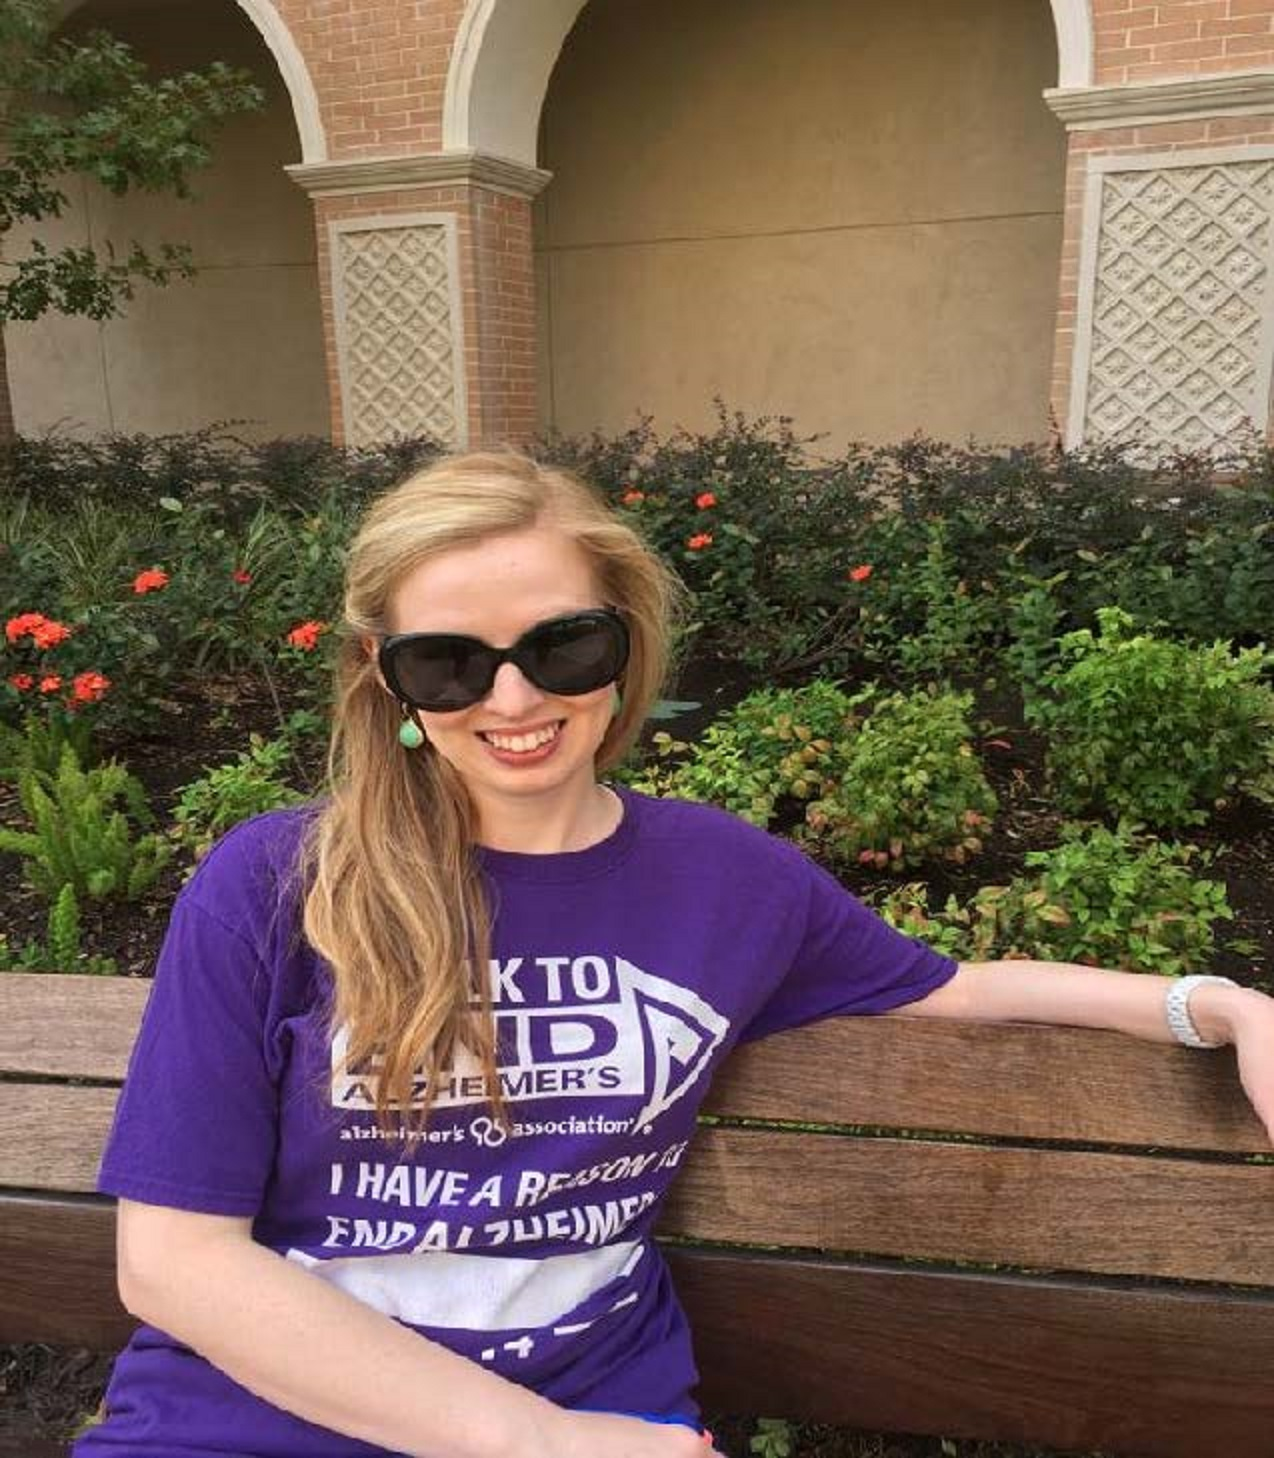 We participate in the Houston walk organized by the Alzheimer's Association in order to raise awareness and fundraise for Alzheimer's research.